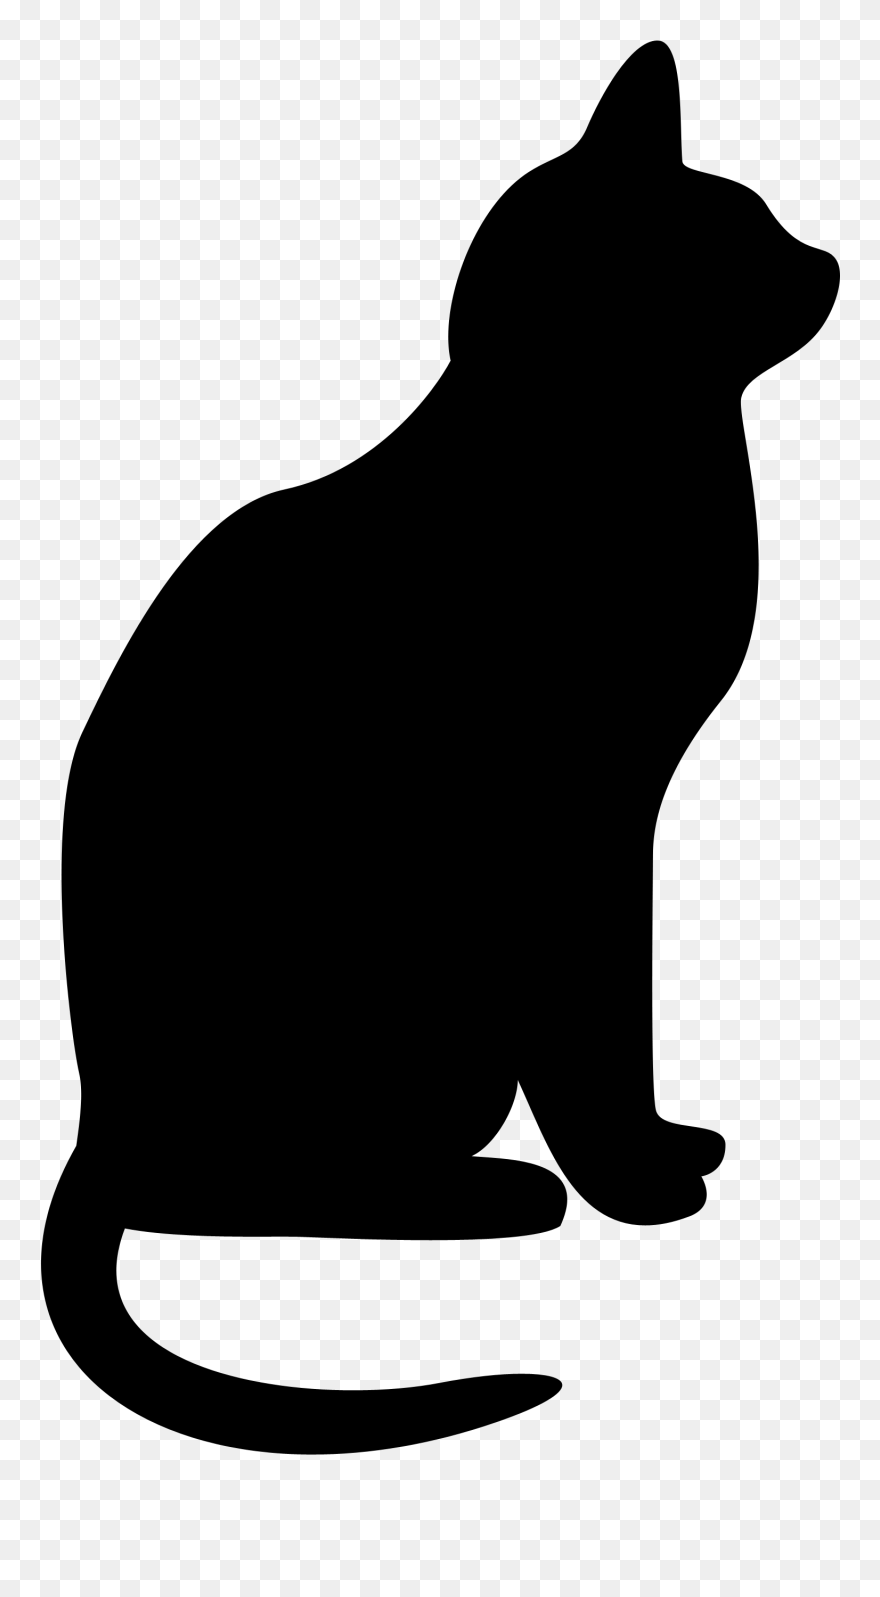 Cats Clipart Silhouette Clip Art Transparent Library Black Cat Silhouette Png Download 126888 Pinclipart